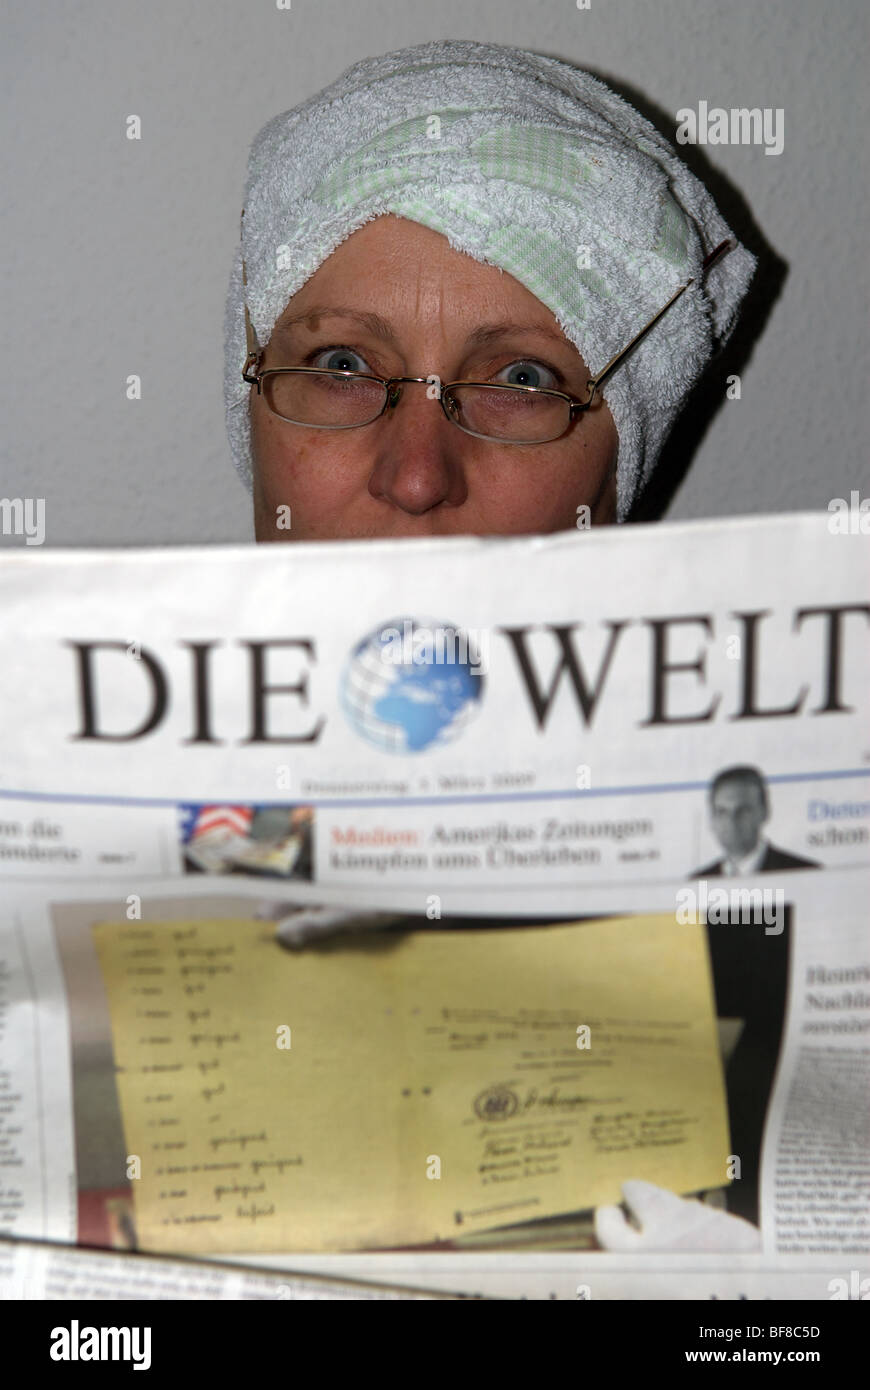 German woman reading Die Welt newspaper while drying her hair - Stock Image